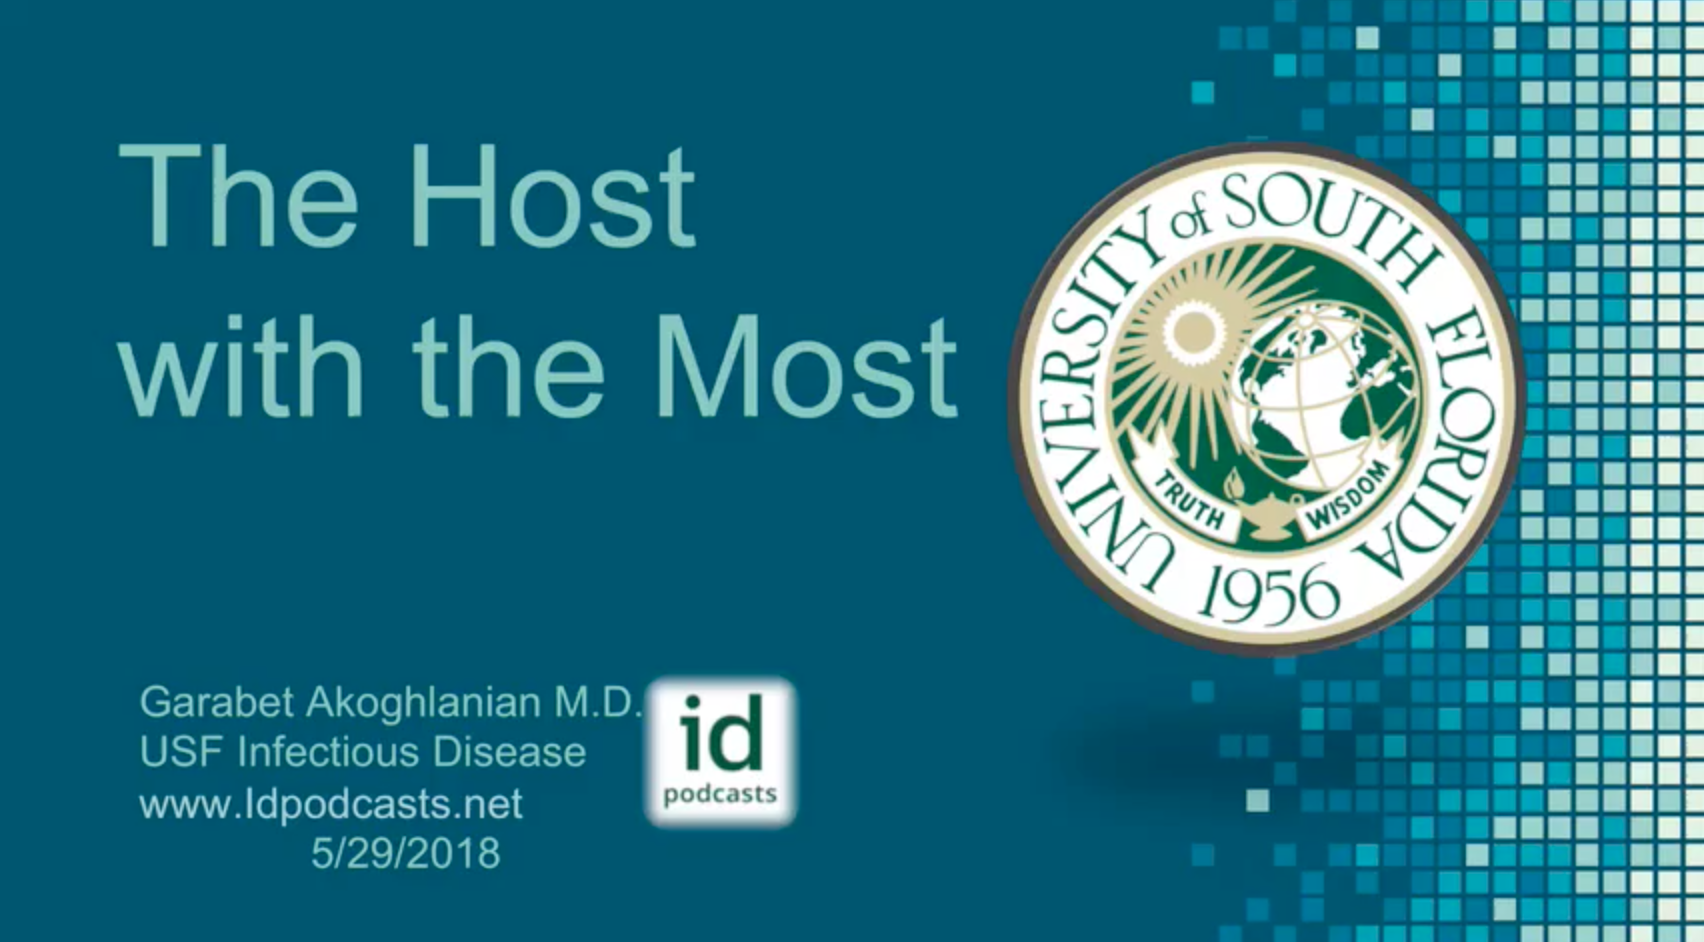 ... Array - usf health u0027s idpodcasts infectious diseases podcasts for  the clinician rh idpodcasts net